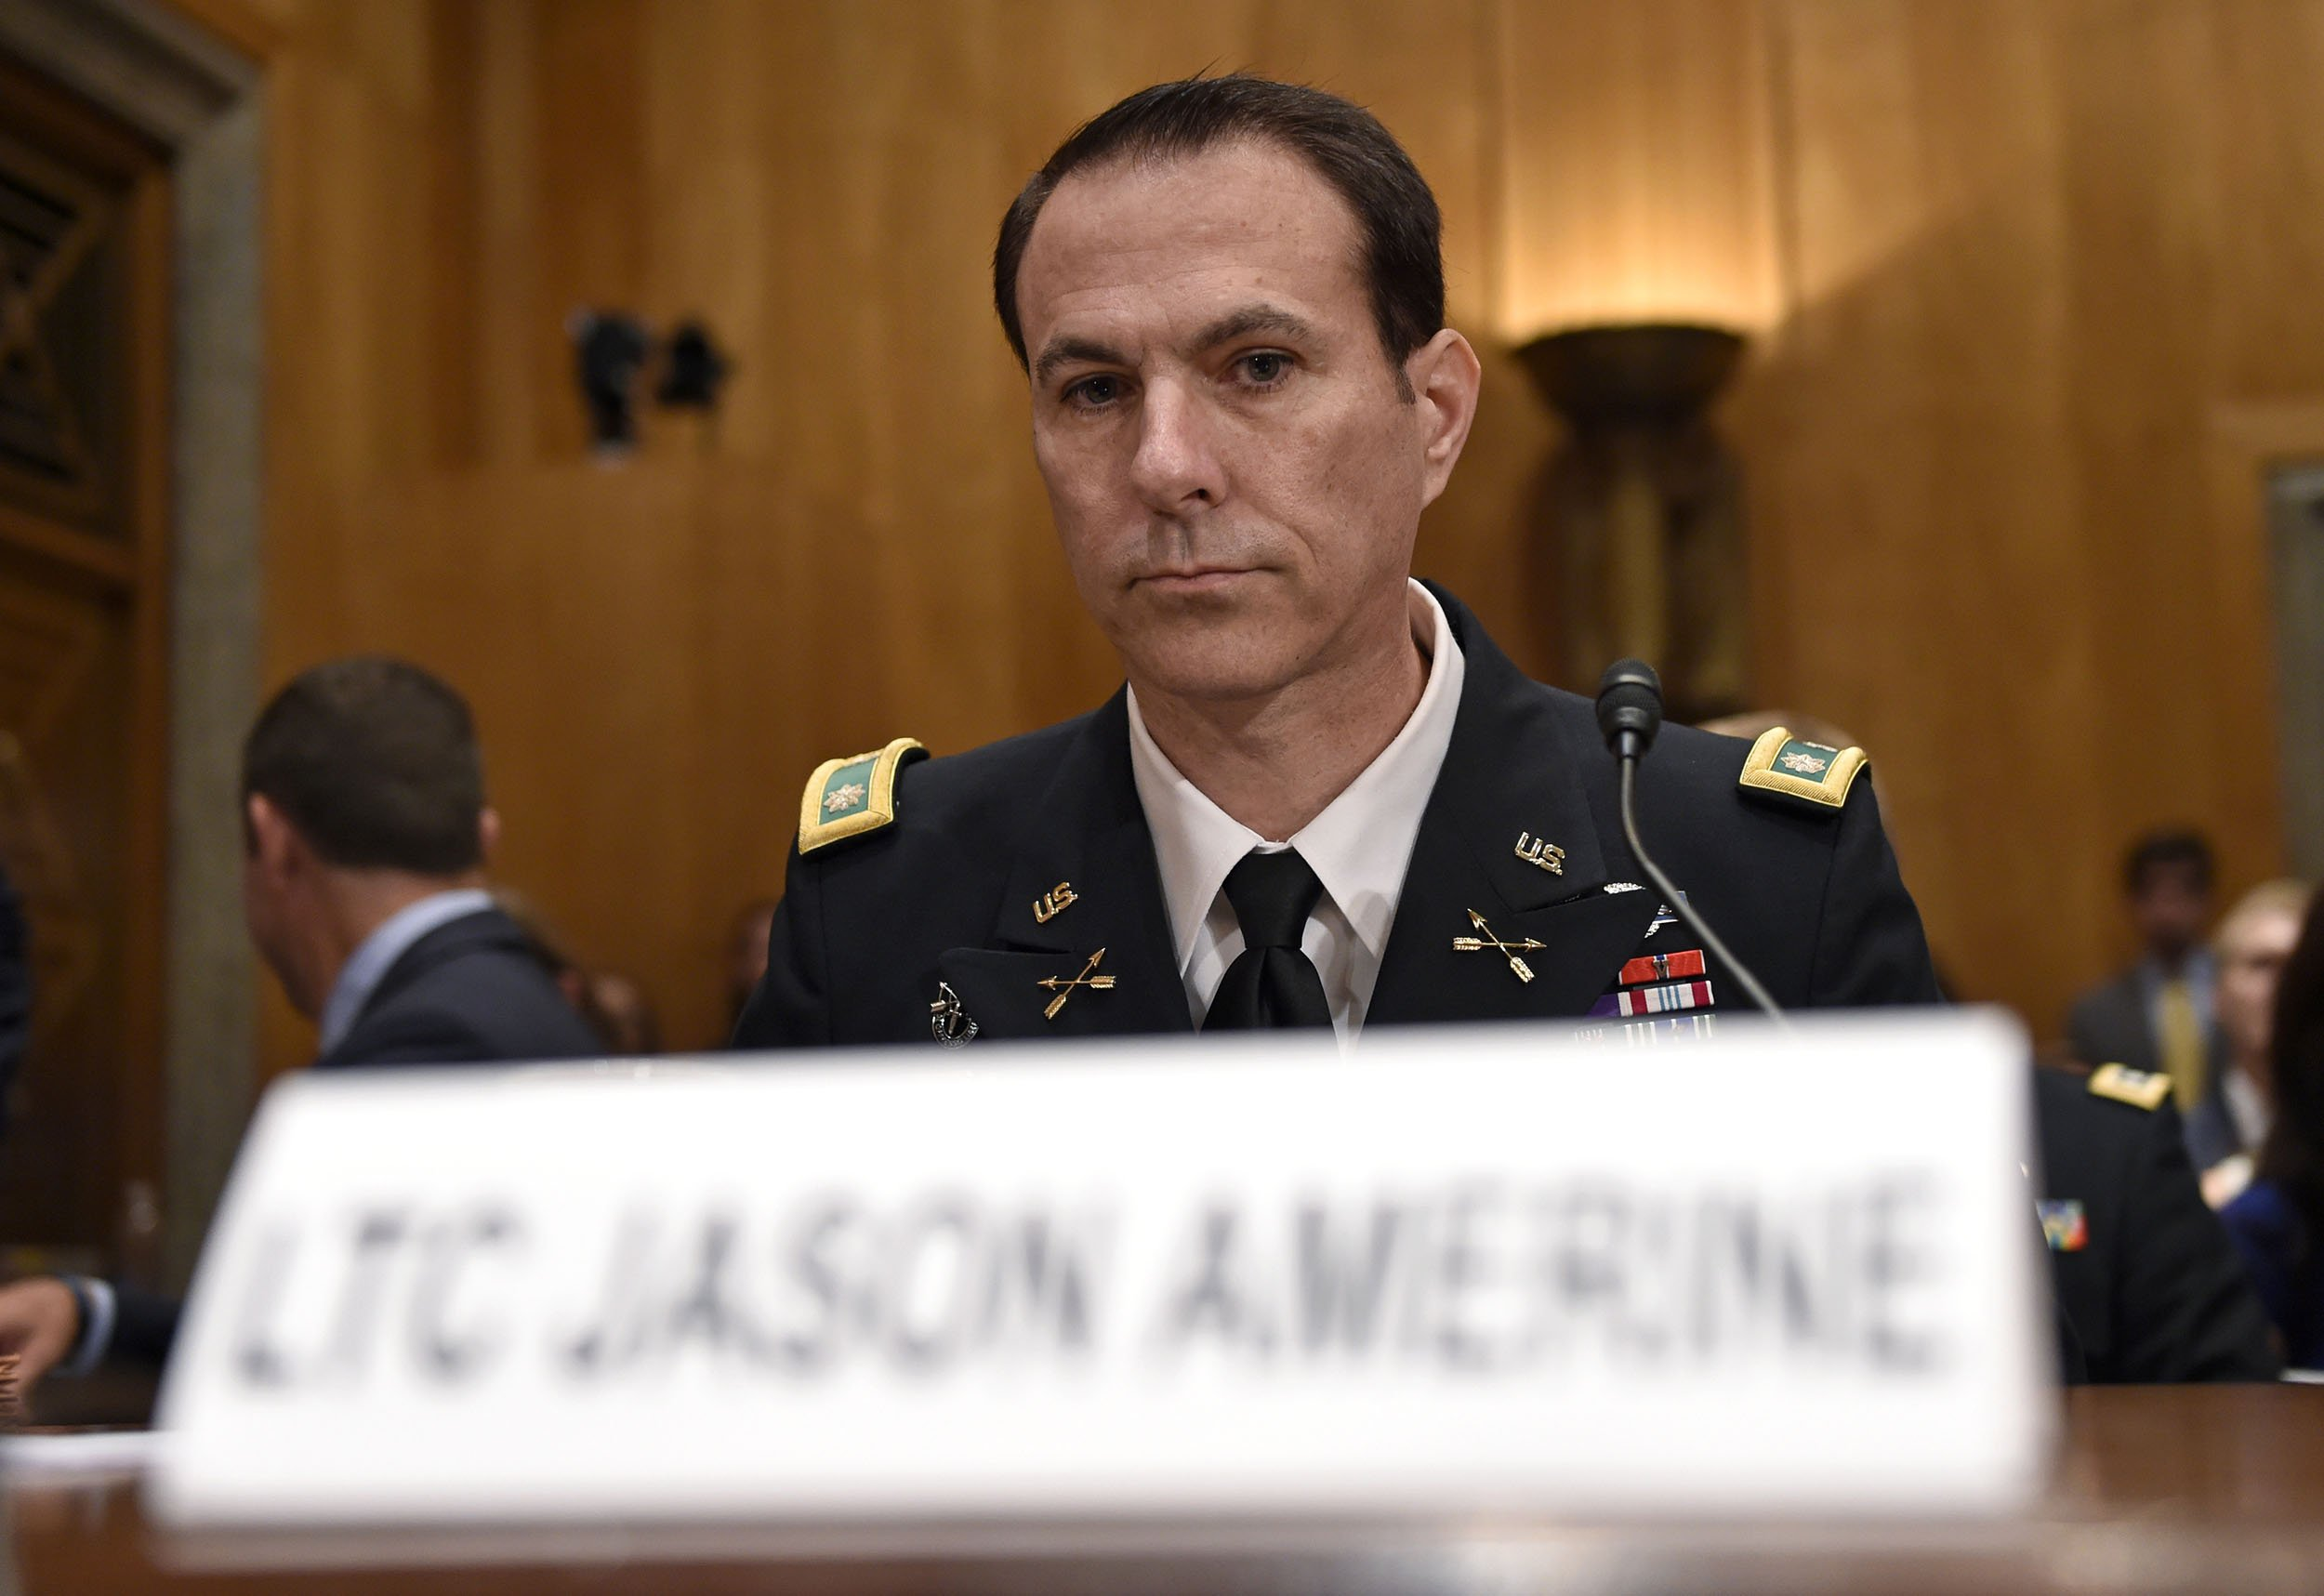 Controversial Green Beret Retires Quietly With High Award